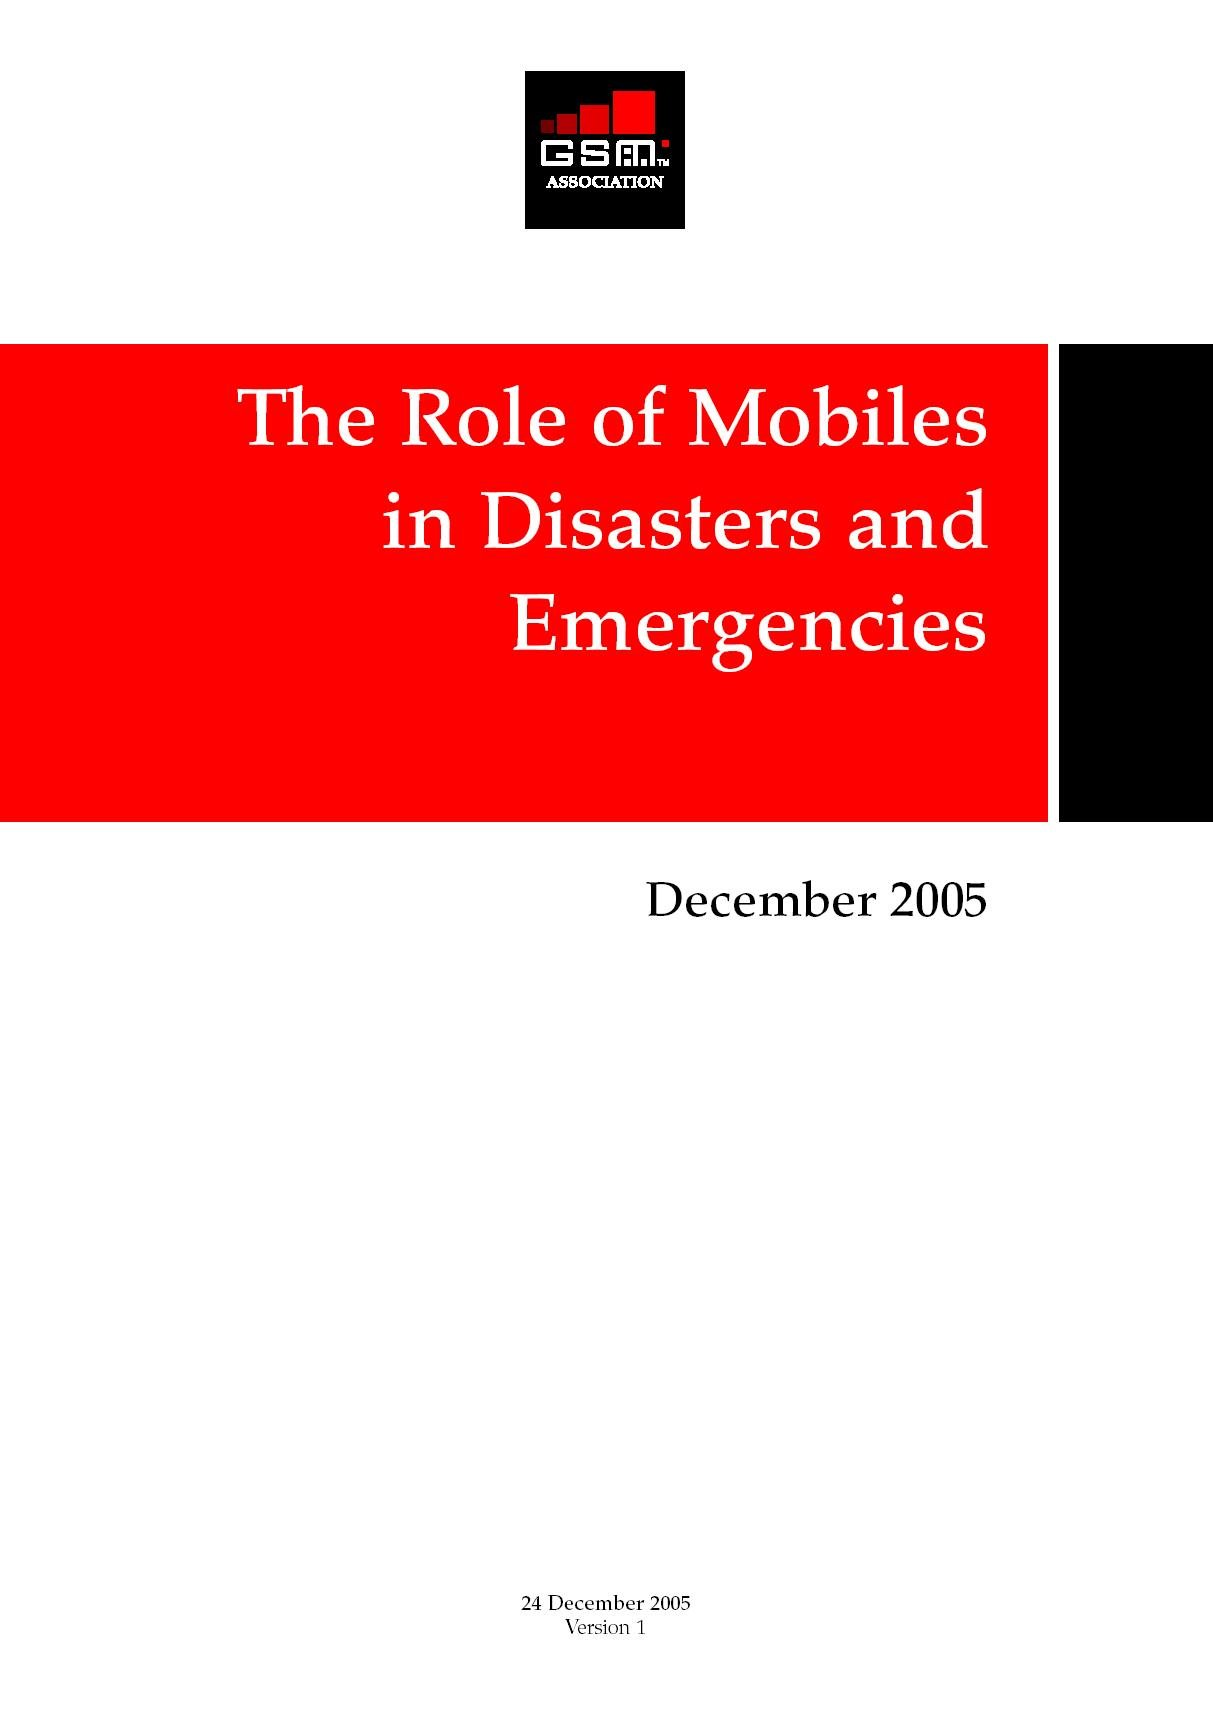 The Role of Mobiles in Disasters and Emergencies